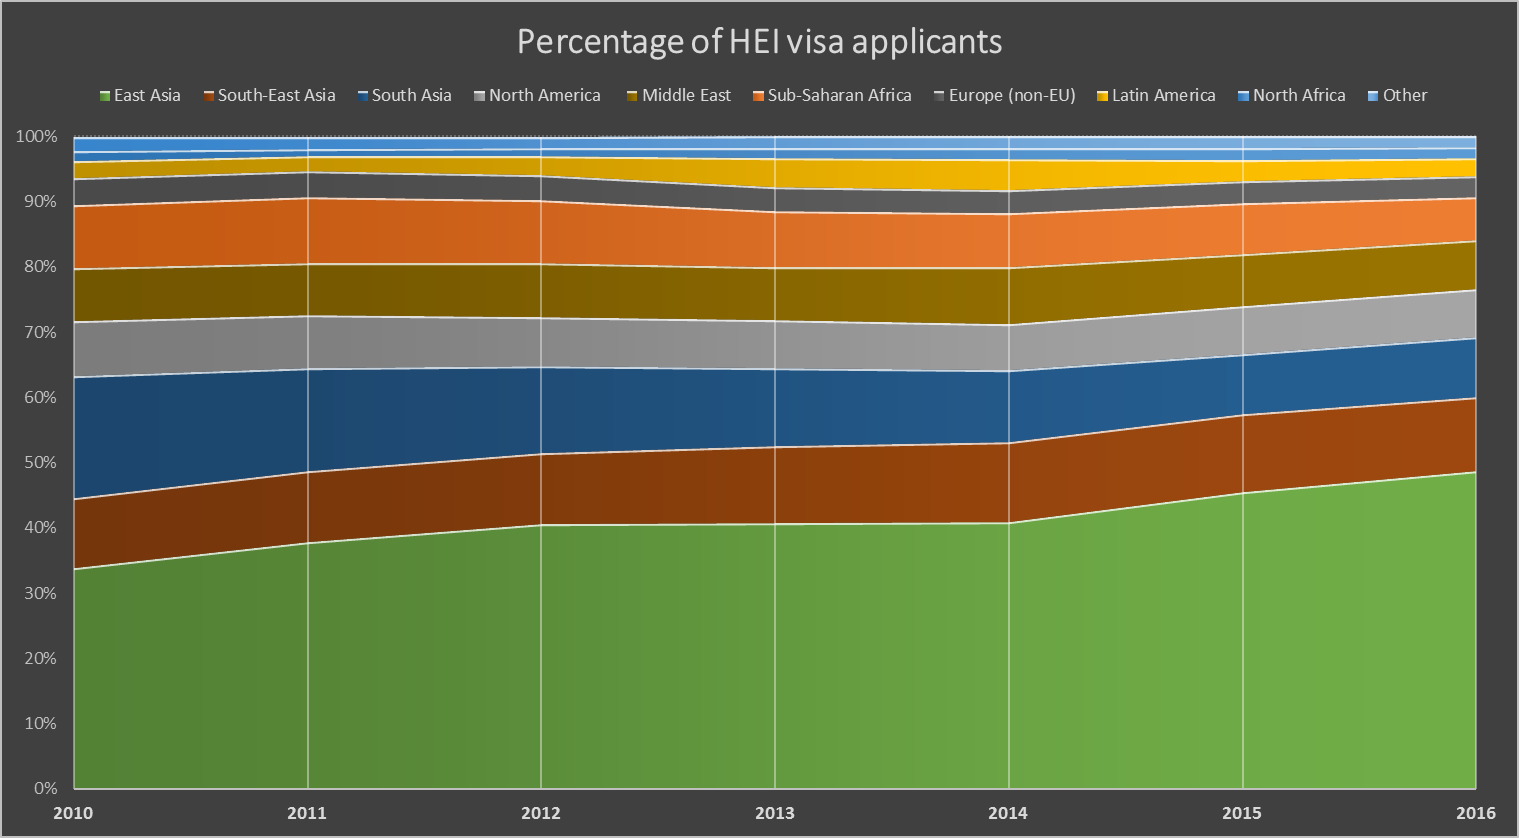 Visa applicants to universities by region